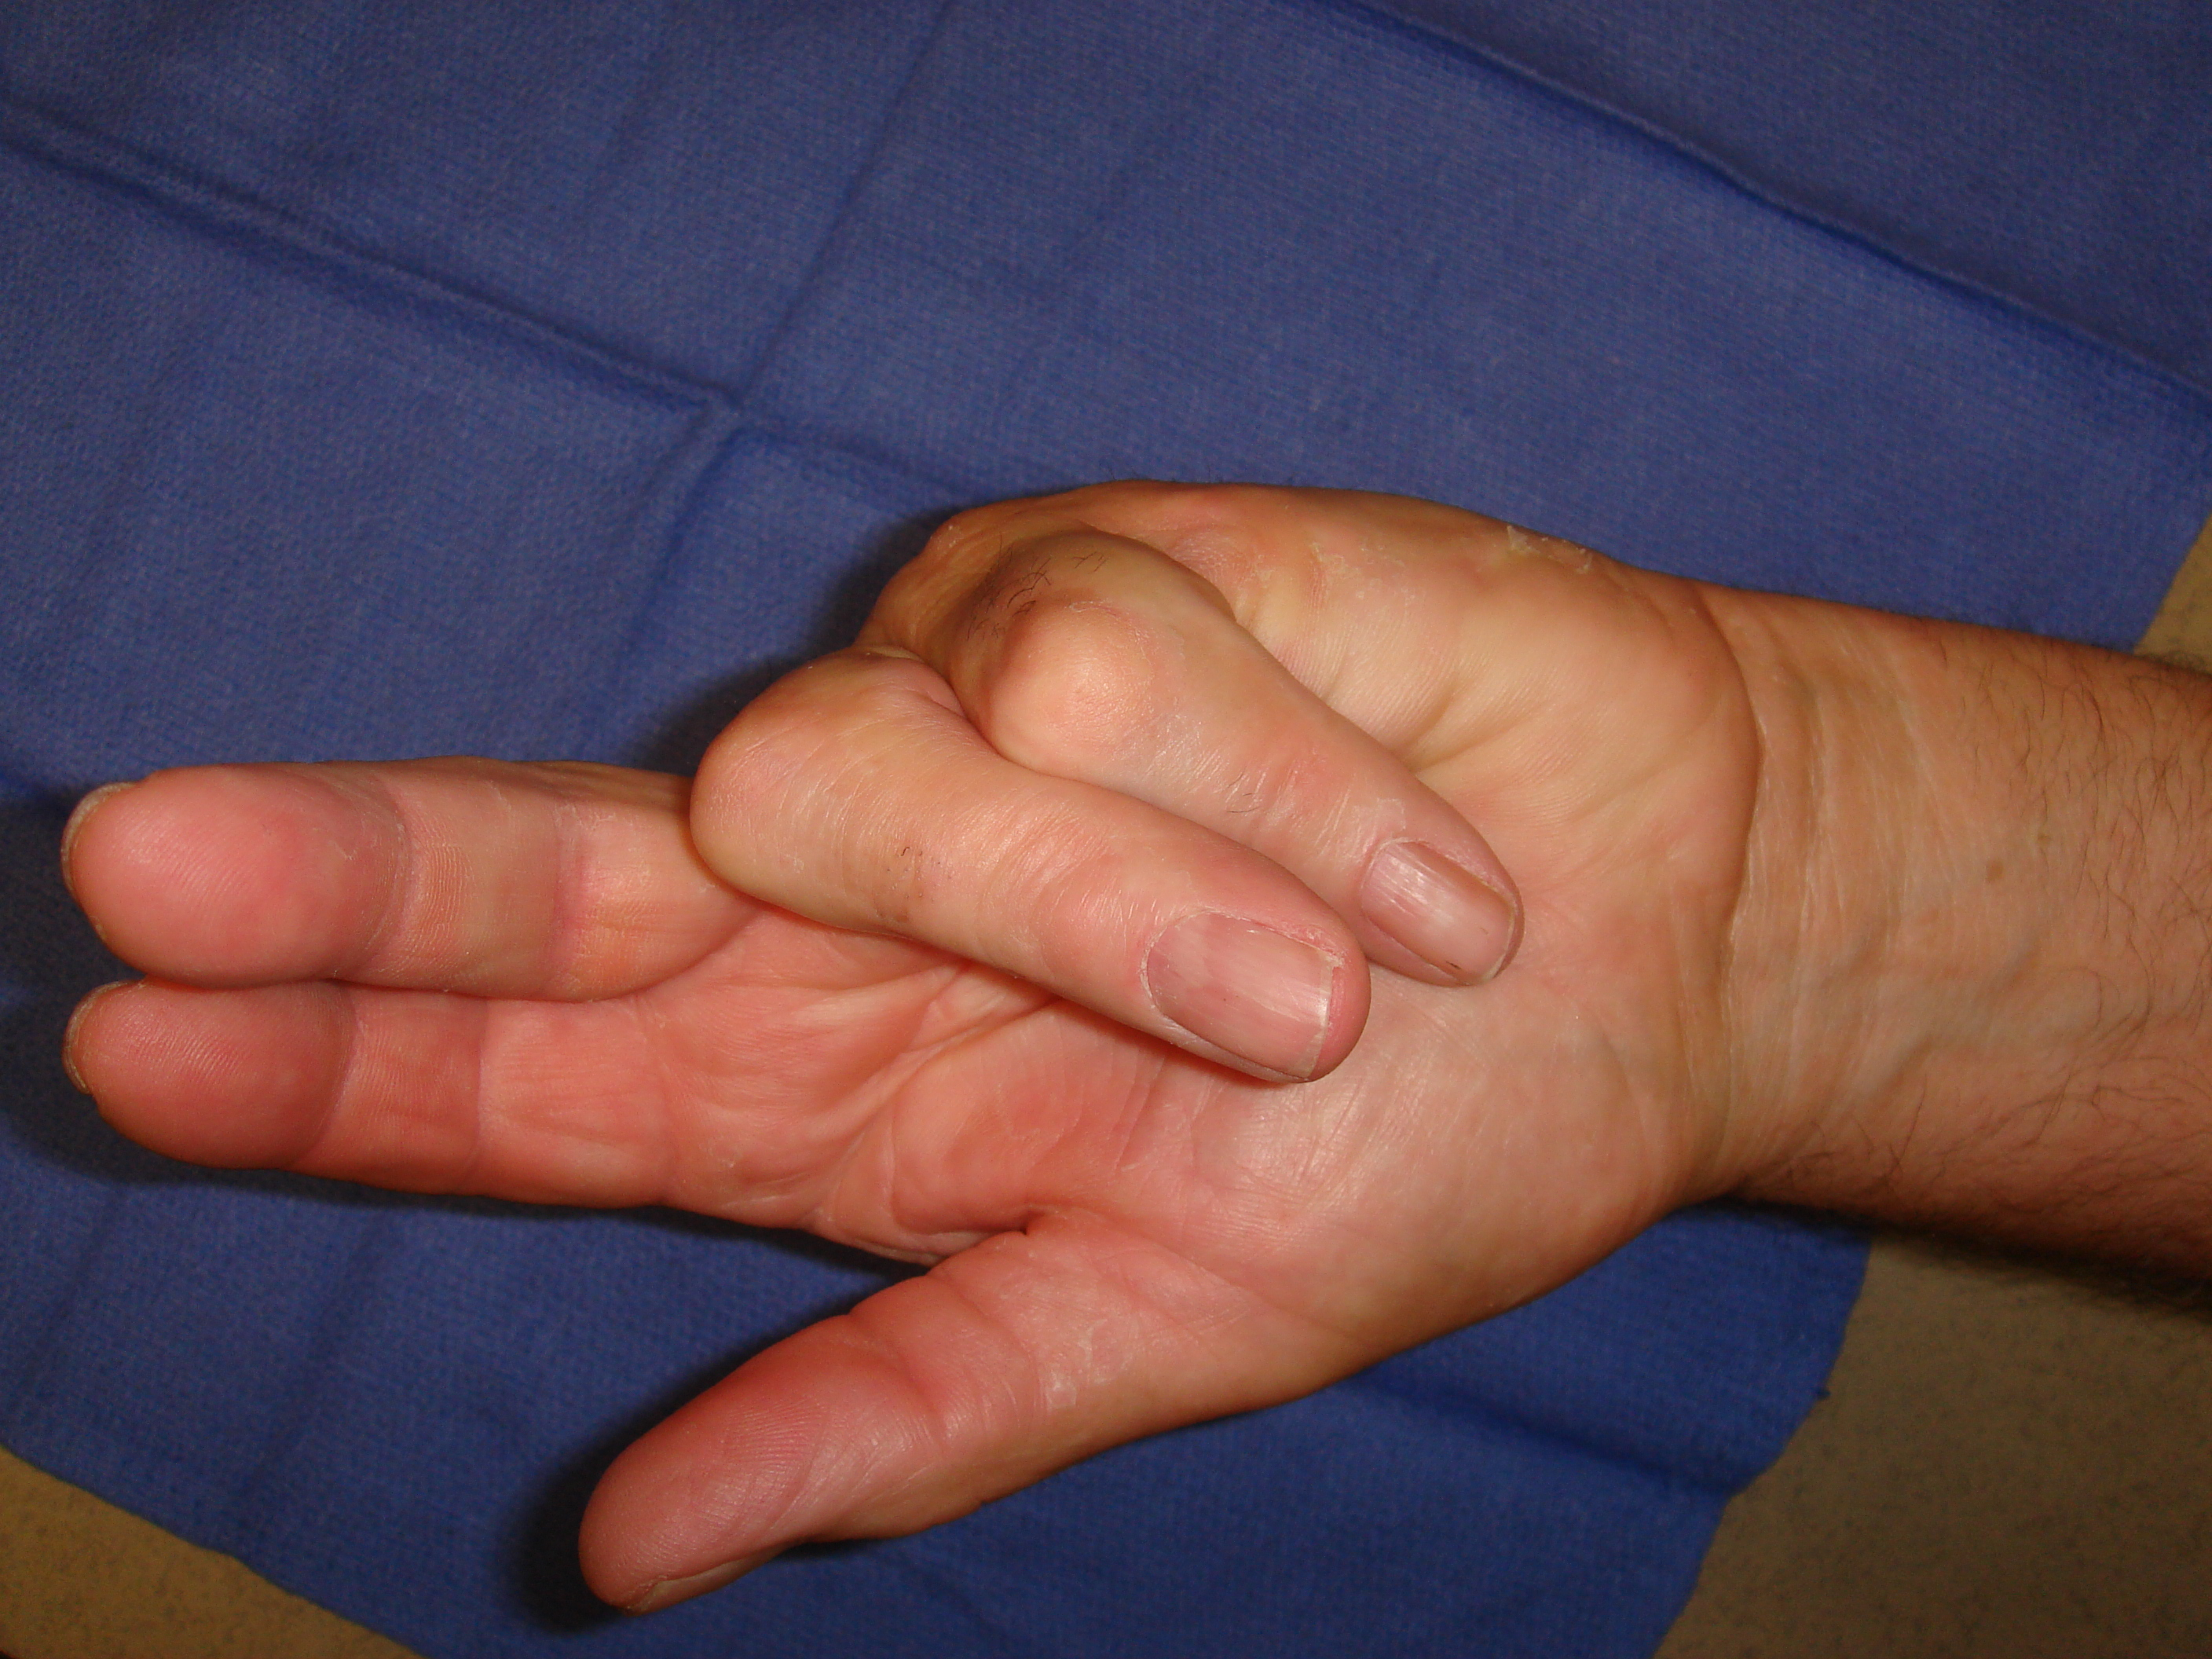 Figure 6b: This patient has advanced post-surgical recurrence of Dupuytren's contracture affecting his left ring and little fingers. There is very limited active and passive ROM. The patient refused to have surgery again, despite dysfunction, but sought collagenase on the advice of a friend who was treated with CCH. Identifiable, palpable cords are present in addition to scar tissue; ultimately, more than 1 treatment cycle was going to be required; treatment started with the little finger.